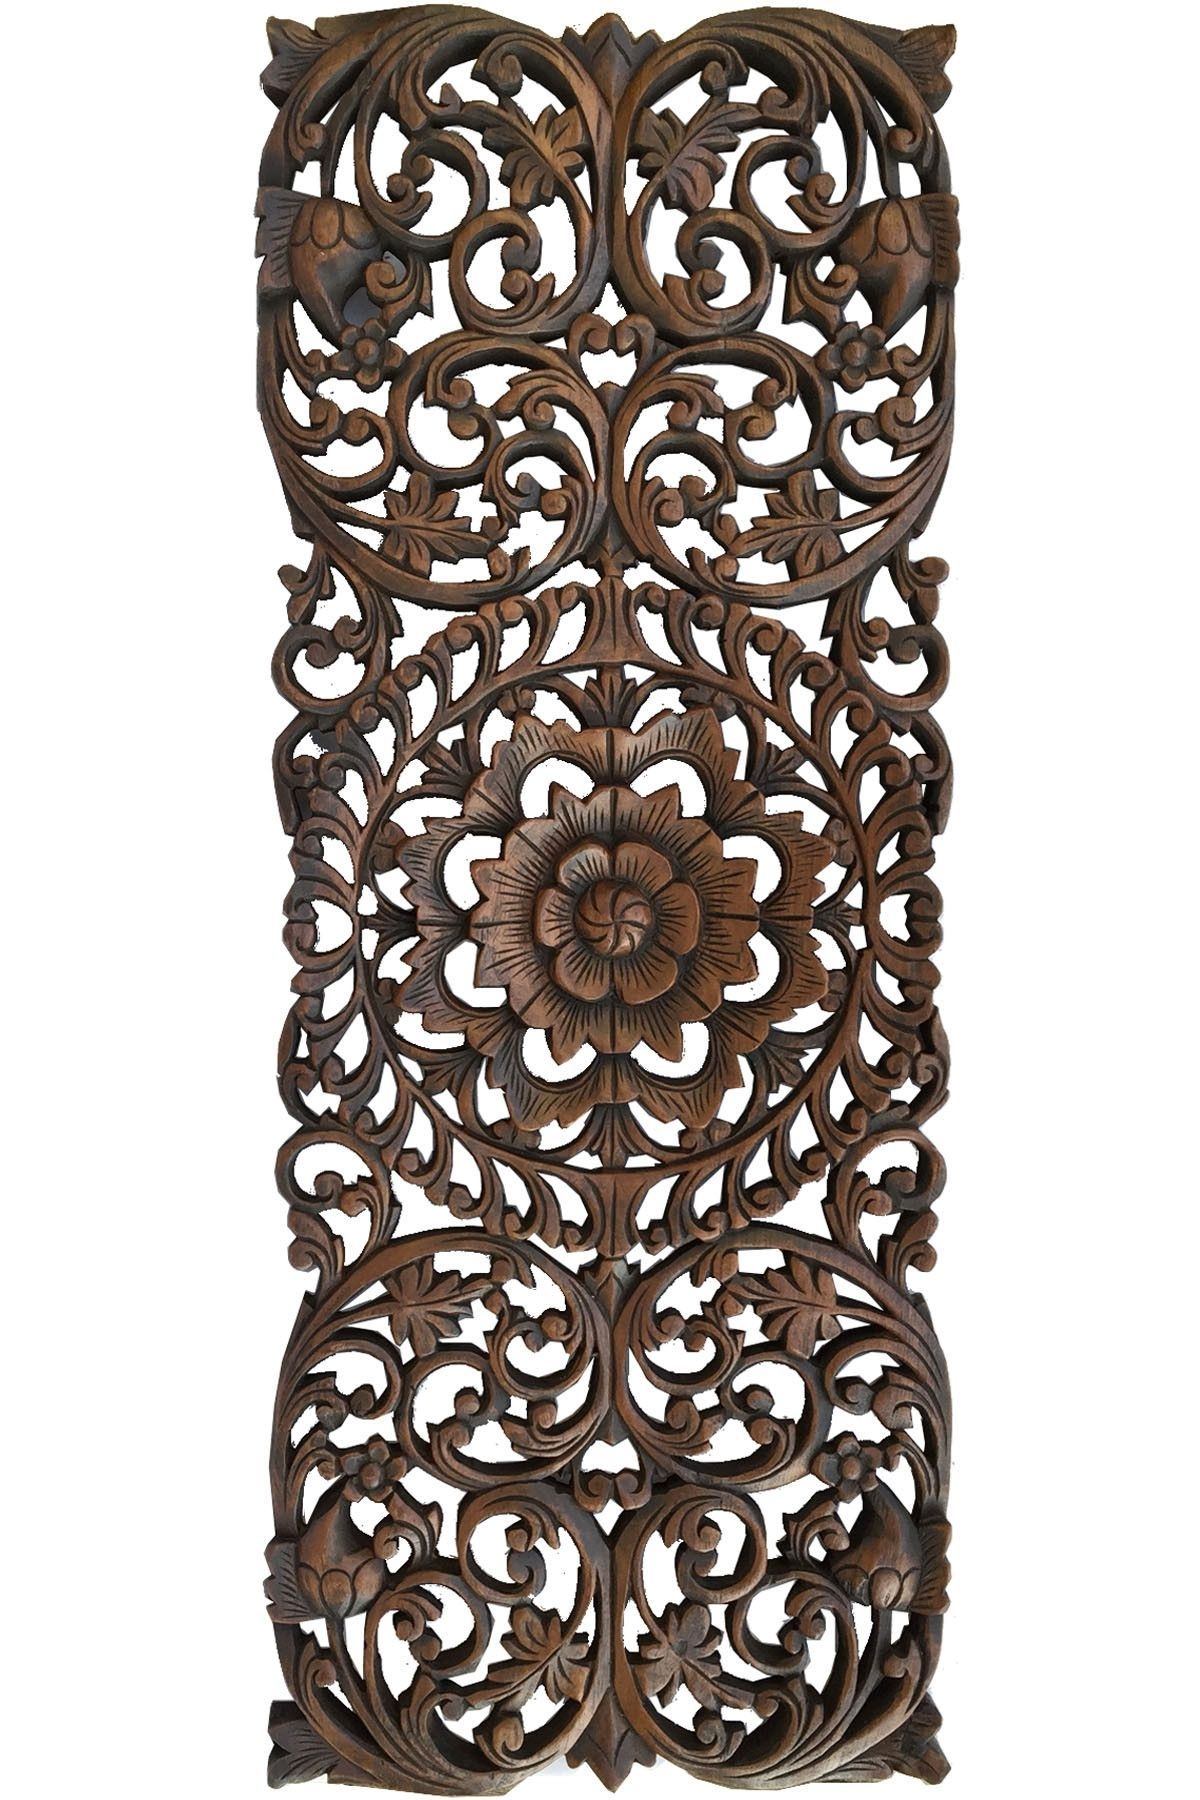 Floral Tropical Carved Wood Wall Panel. Asian Wall Art Home Decor inside Asian Wall Art (Image 13 of 20)